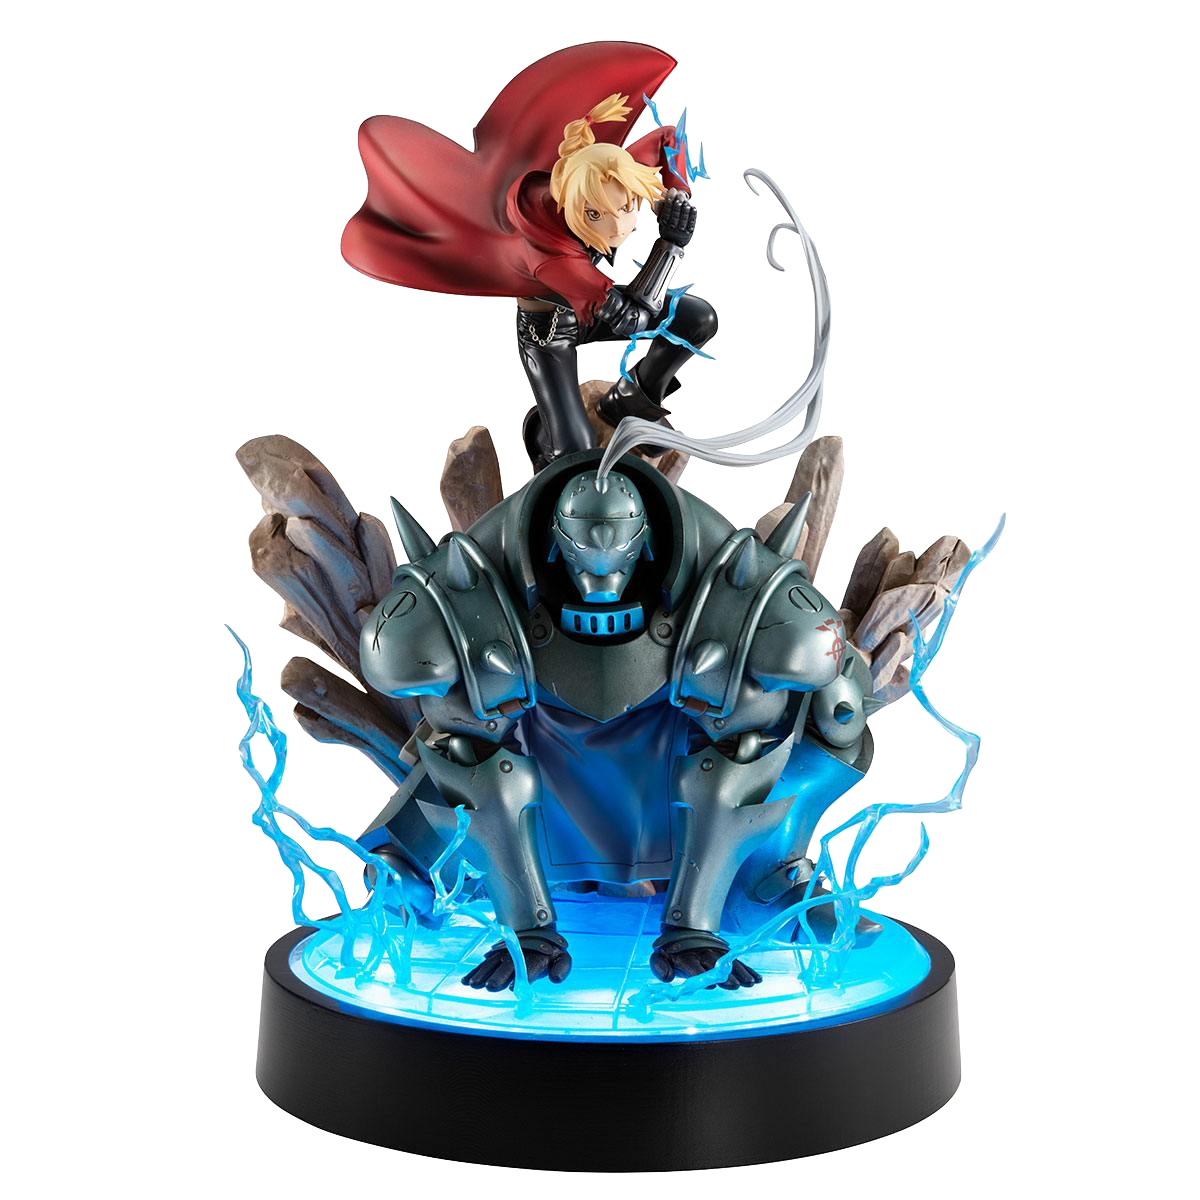 megahouse-full-metal-alchemist-alphonse-and-edward-gem-pv-statue-toyslife